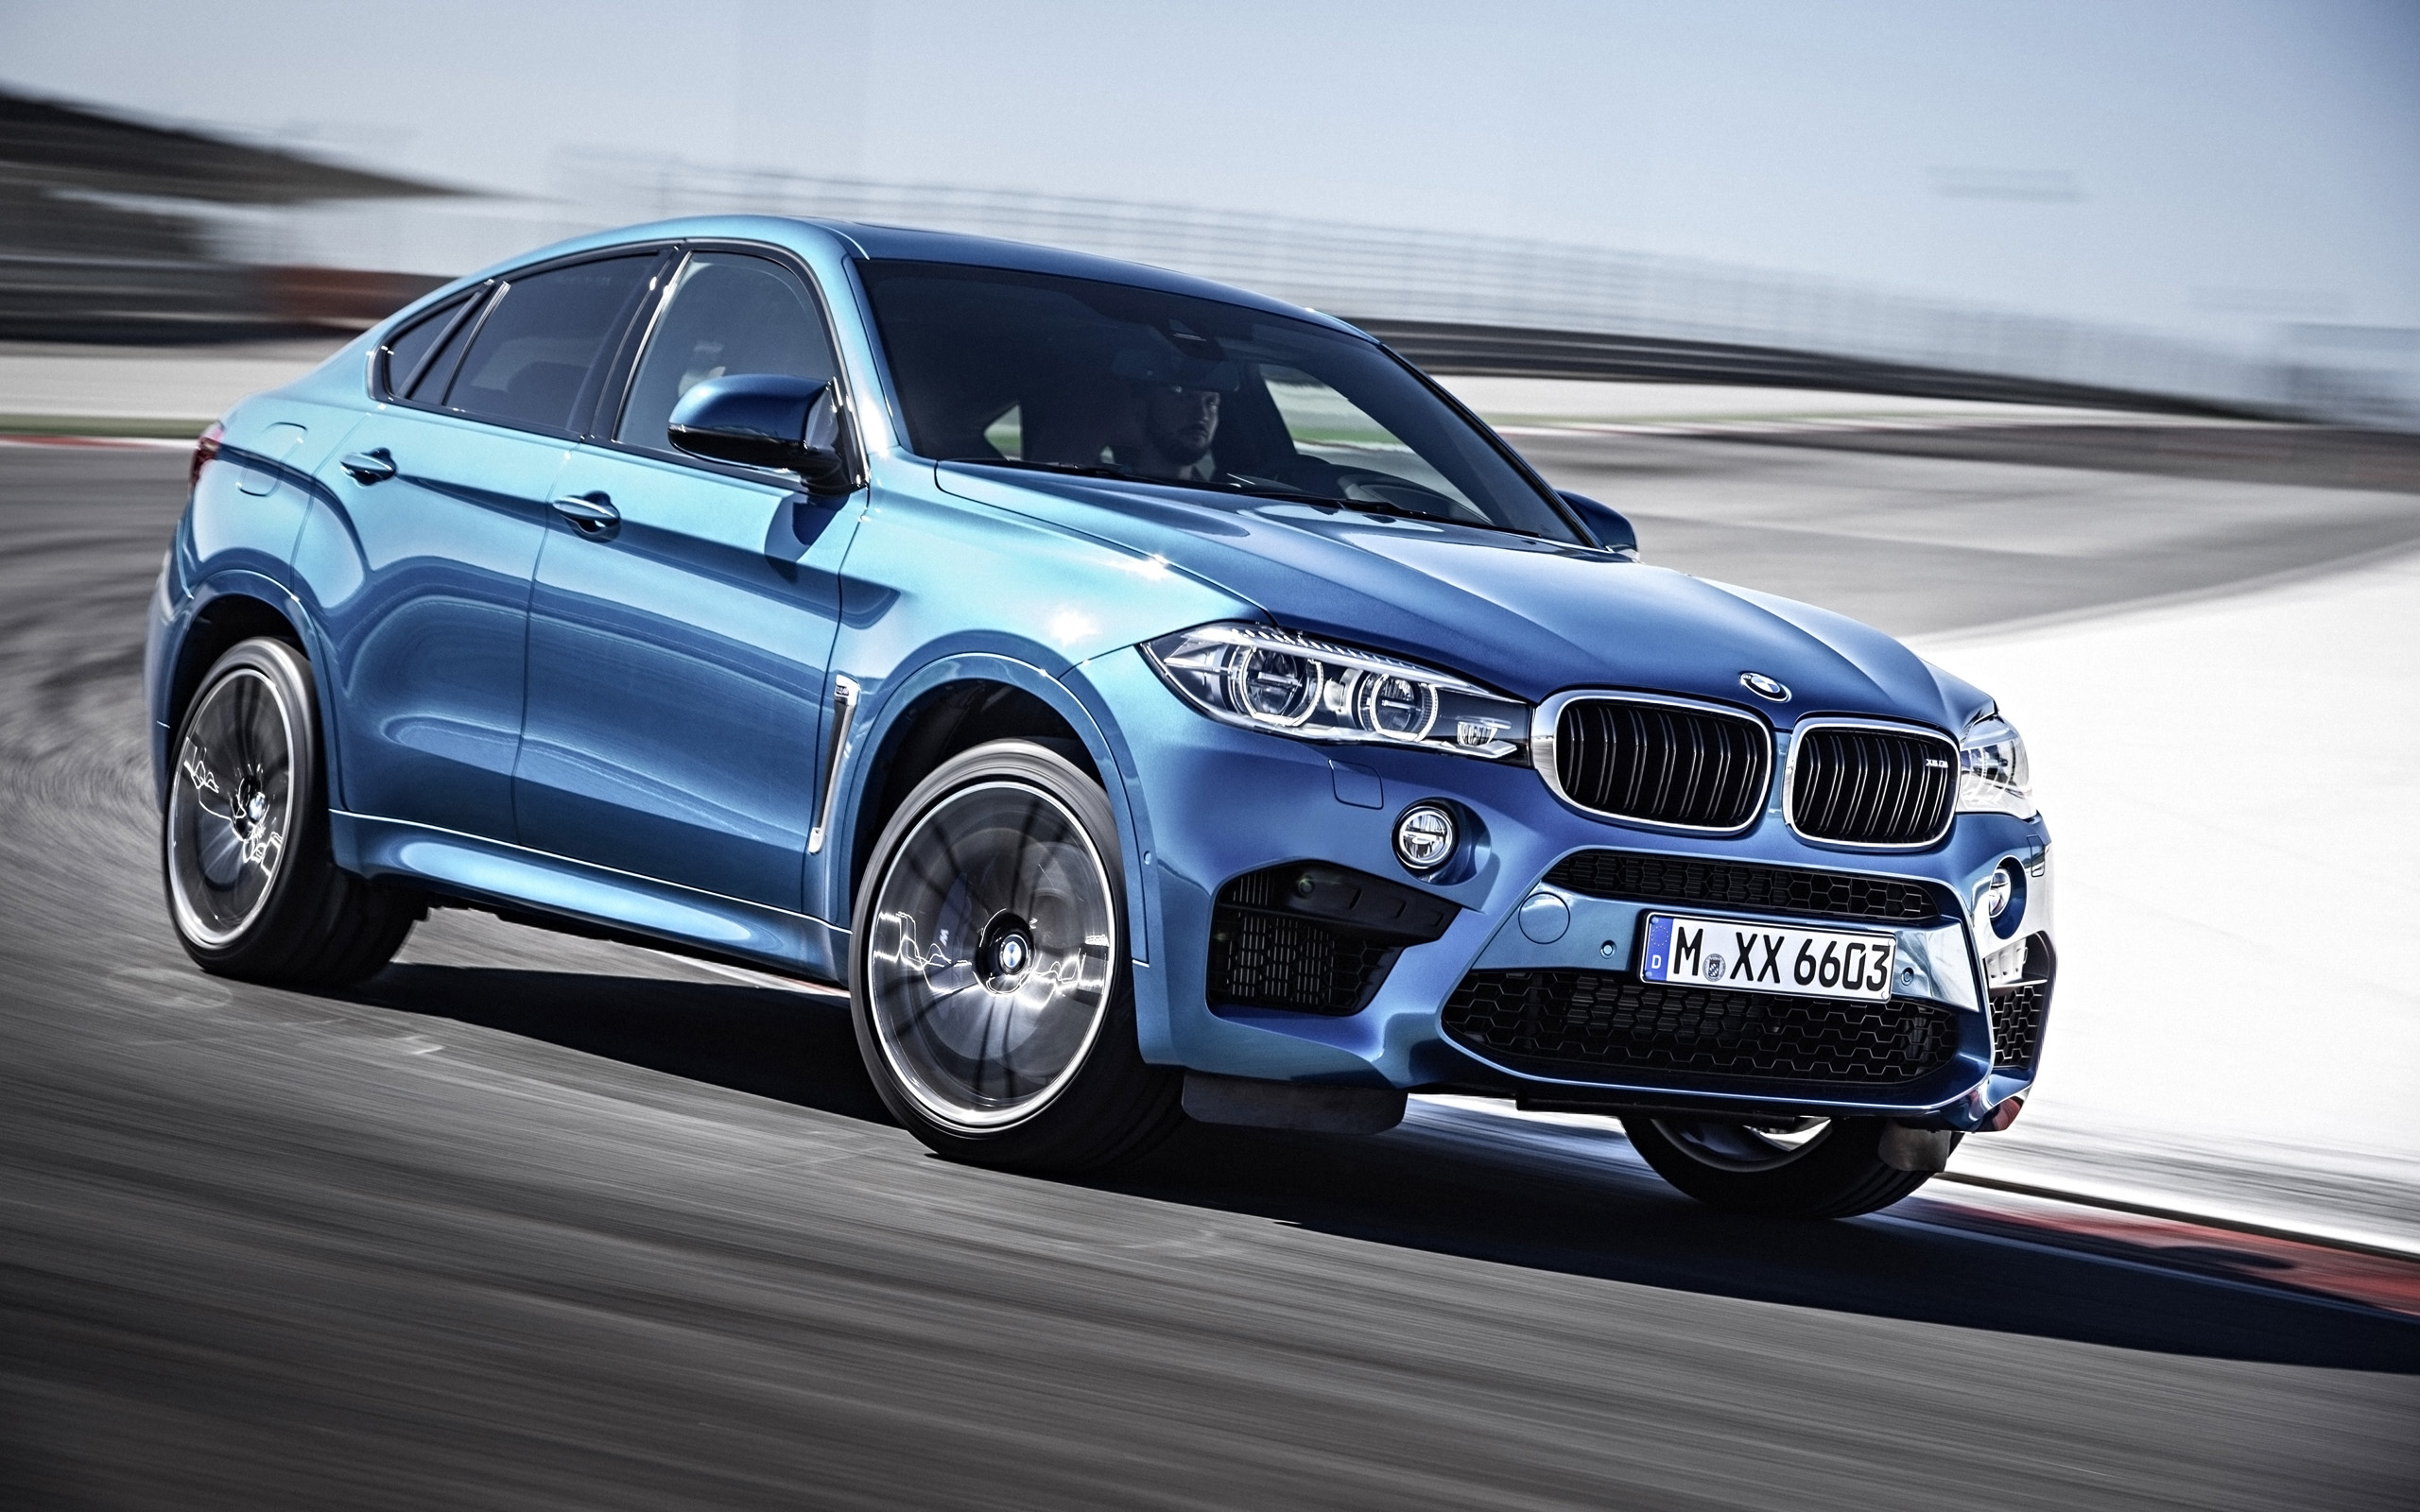 2015 BMW X6 M Wallpaper HD Car Wallpapers 2560x1600